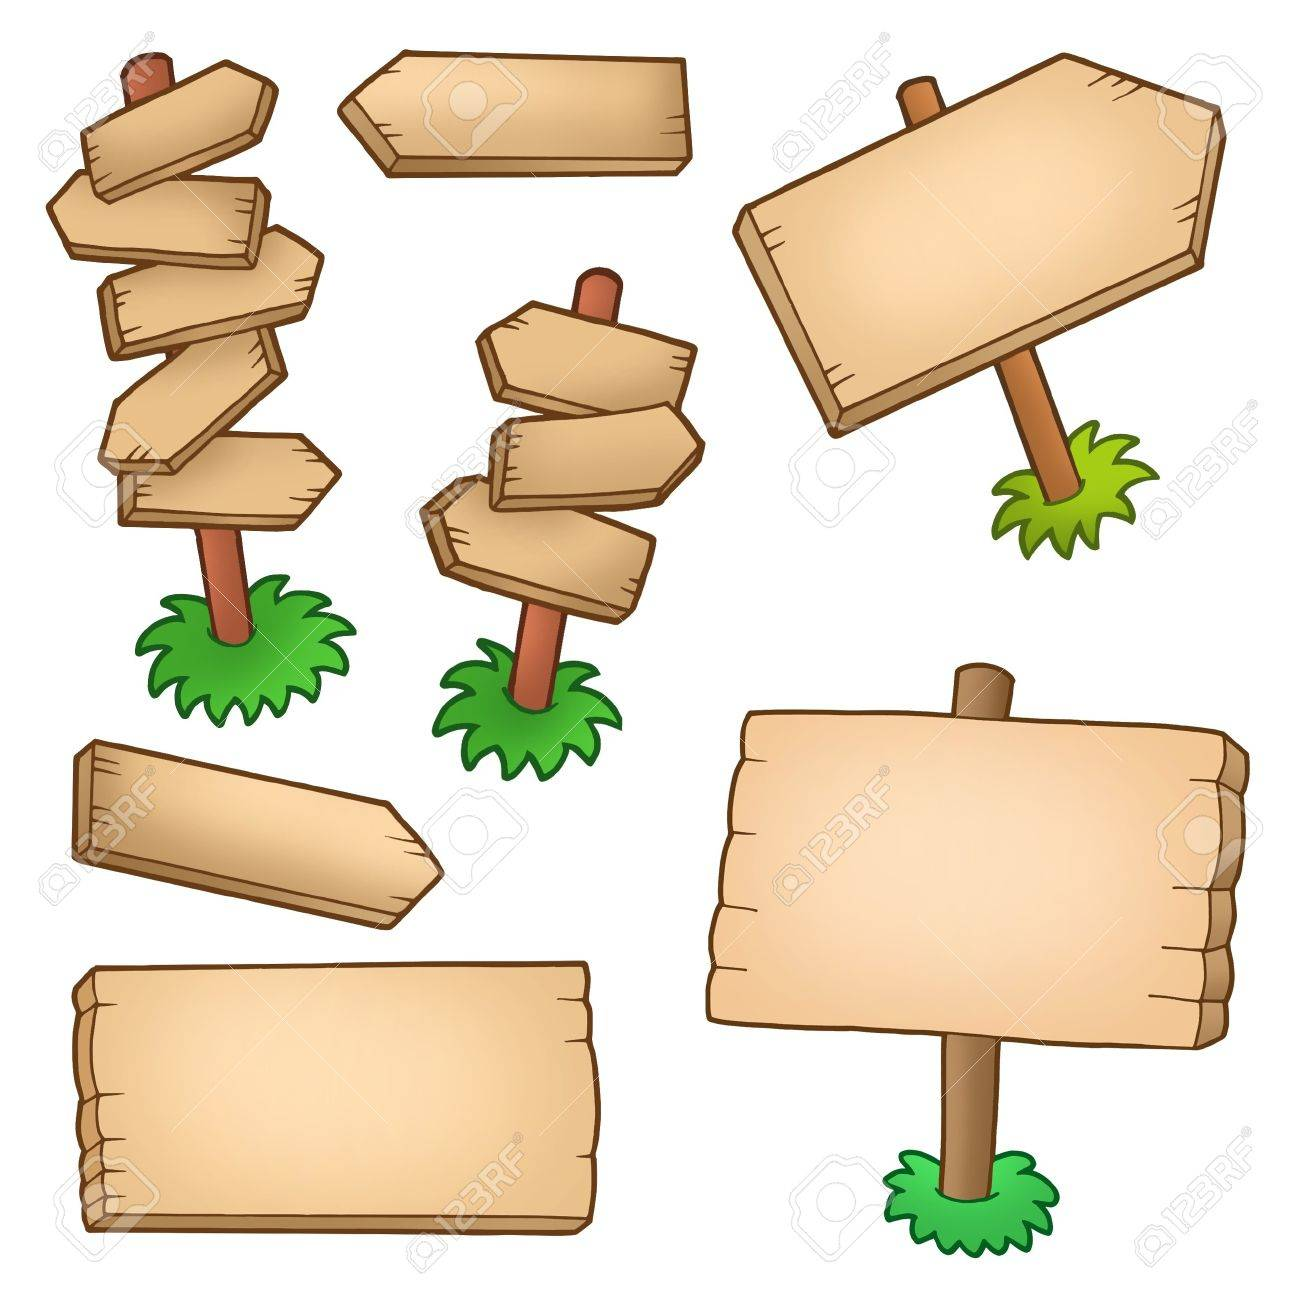 Various wooden panels collection - color illustration. Stock Illustration - 7150727